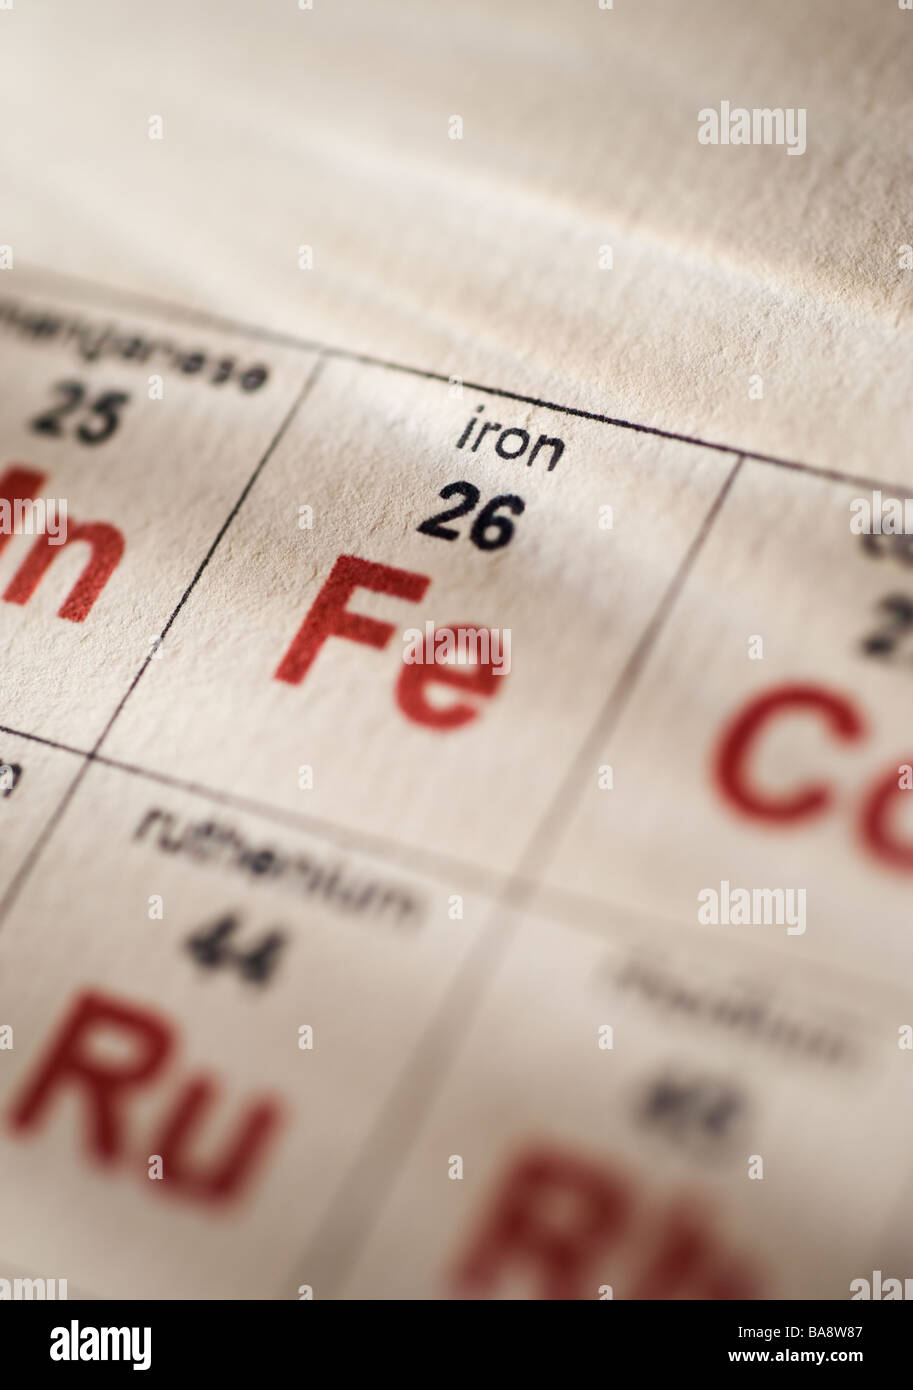 What group is iron in on the periodic table images periodic whats iron on the periodic table images periodic table images whats iron on the periodic table gamestrikefo Images